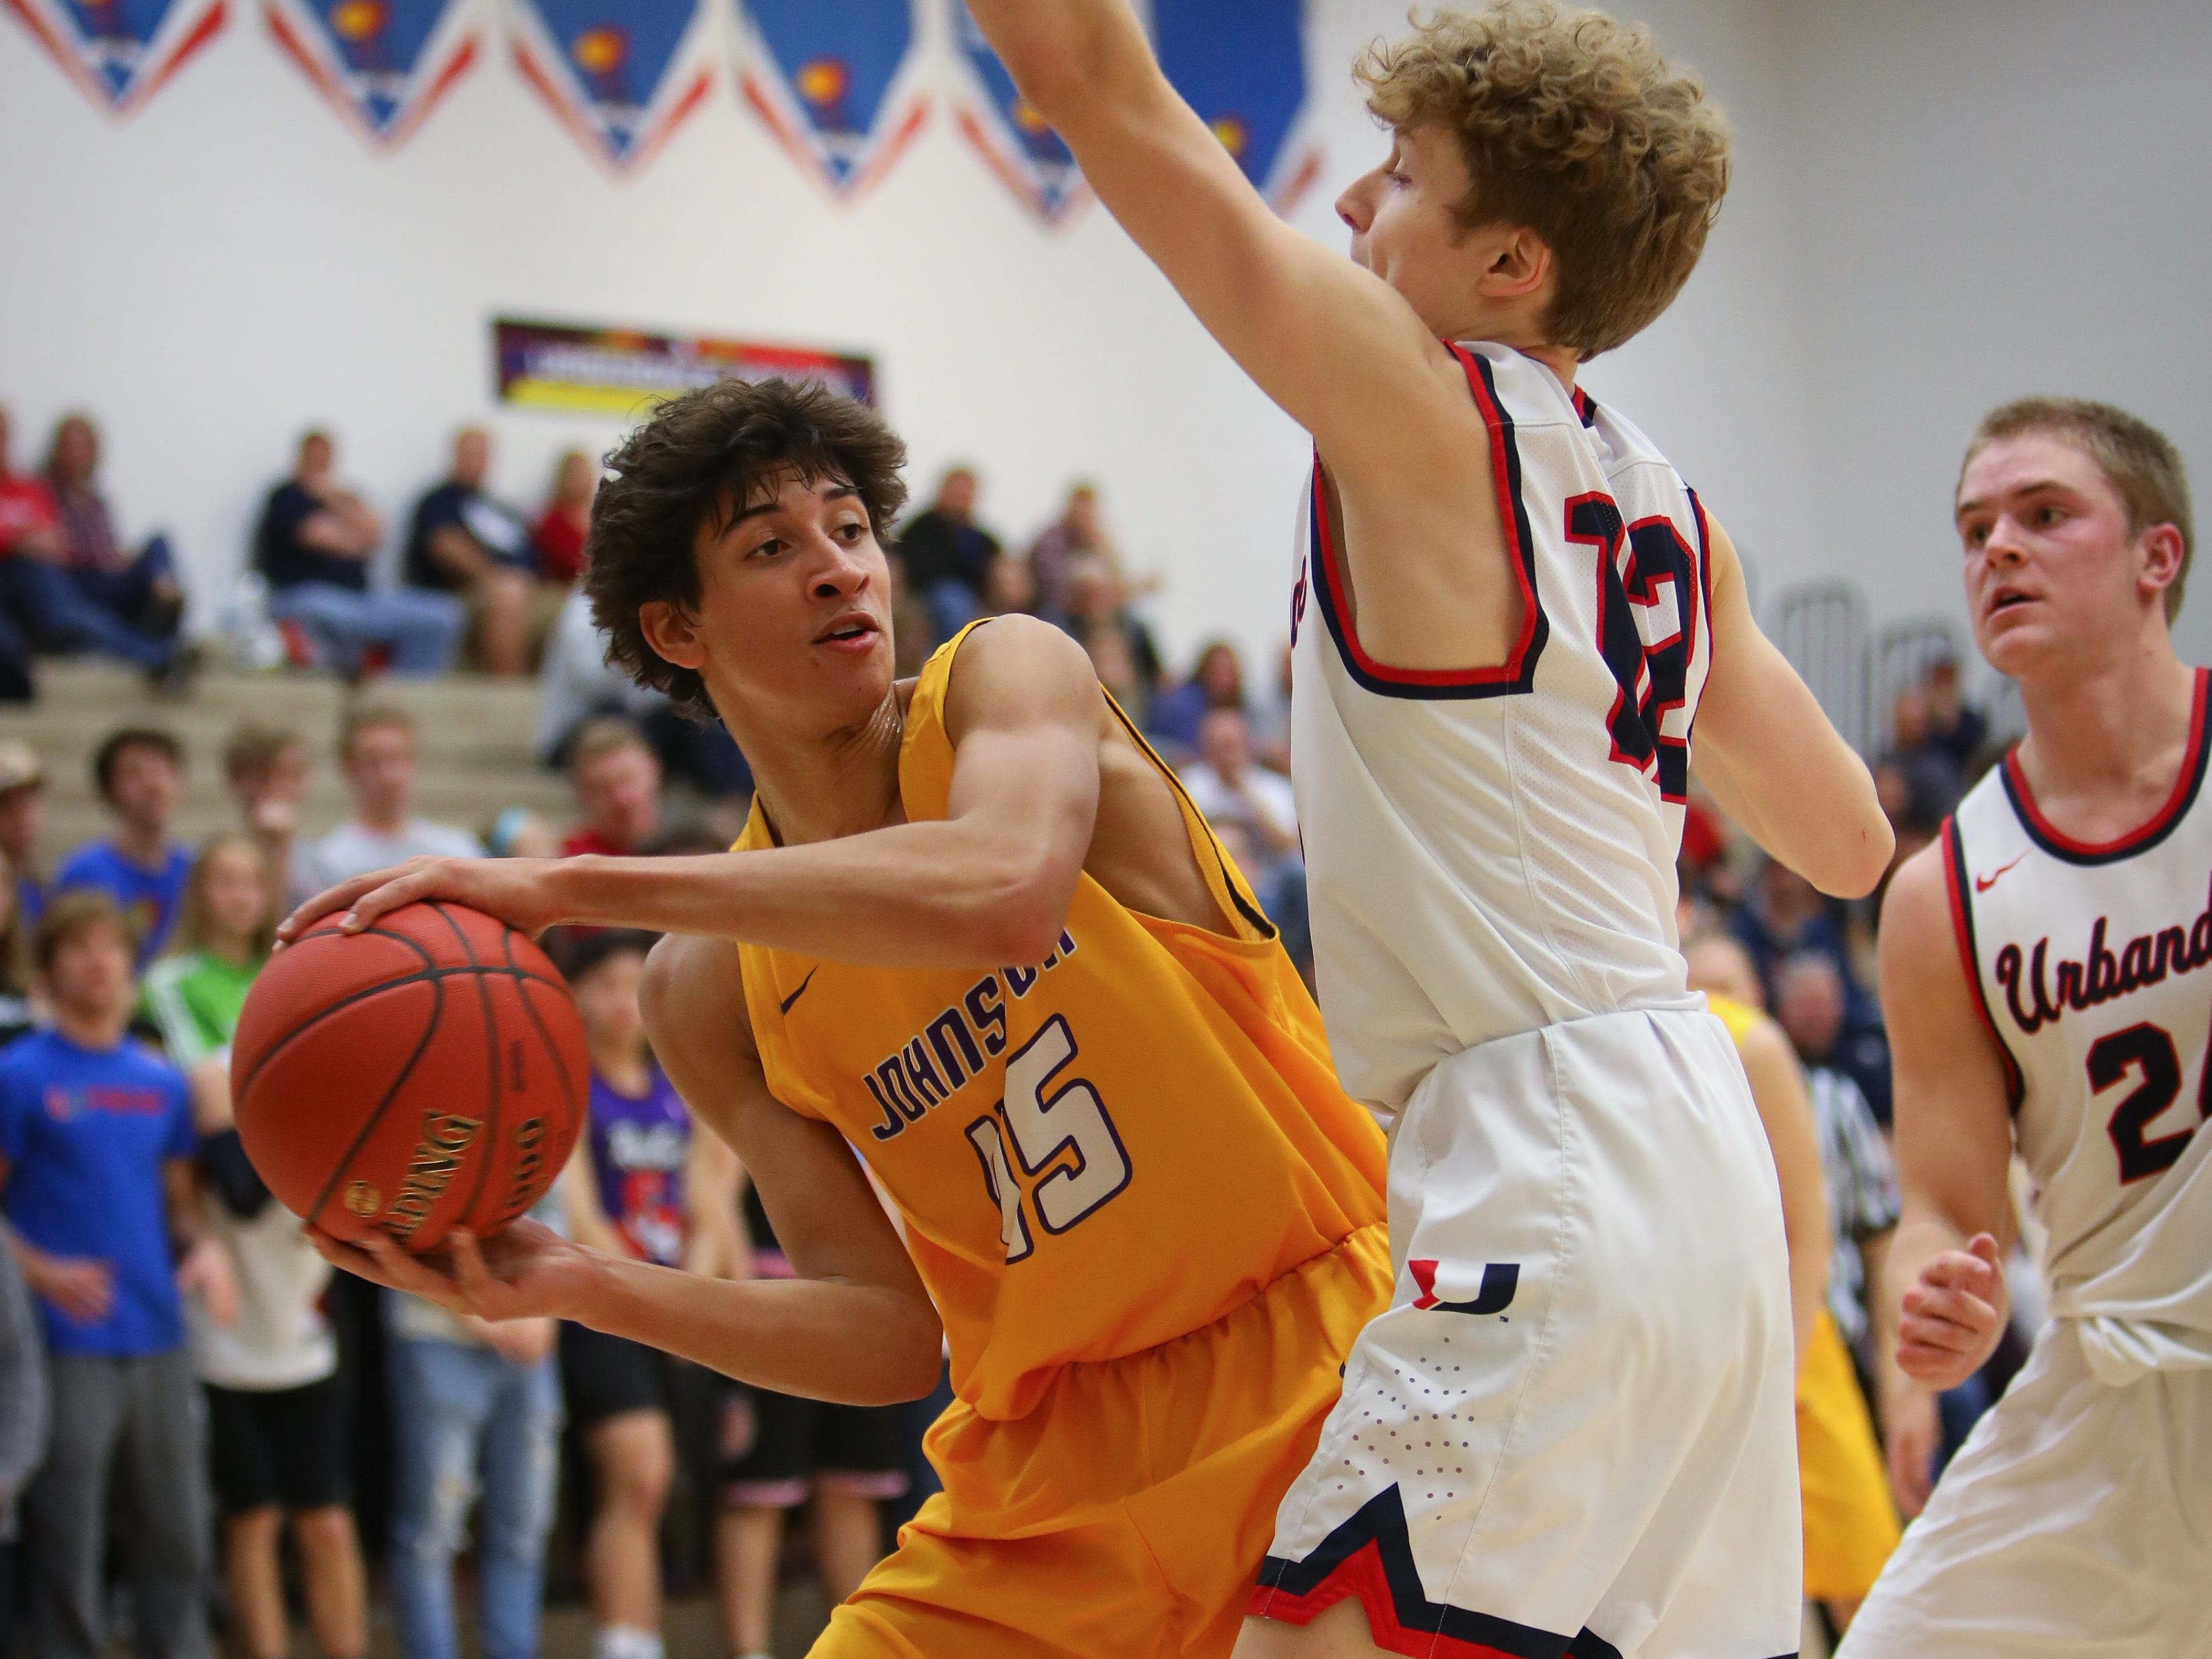 Johnston senior Ty Petty looks for an open teammate during a boys high school basketball game between the Johnston Dragons and the Urbandale J-Hawks at Urbandale High School on Dec. 18, 2018 in Urbandale, Iowa.